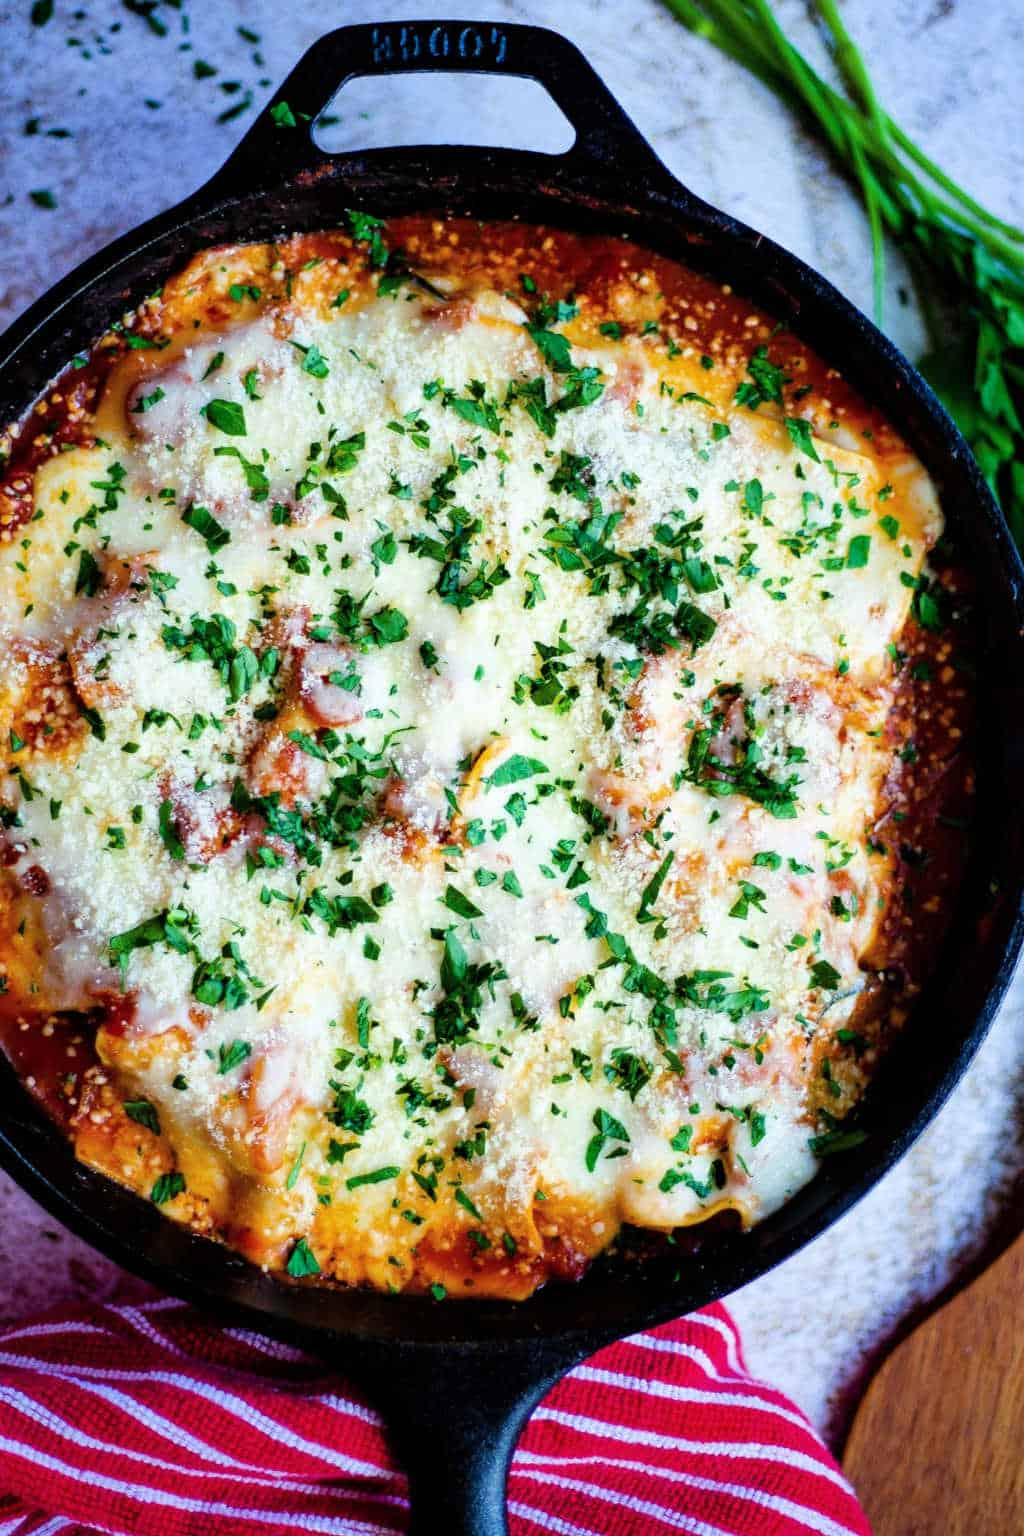 Skillet Lasagna with Squash and Mushrooms in a cast iron skillet